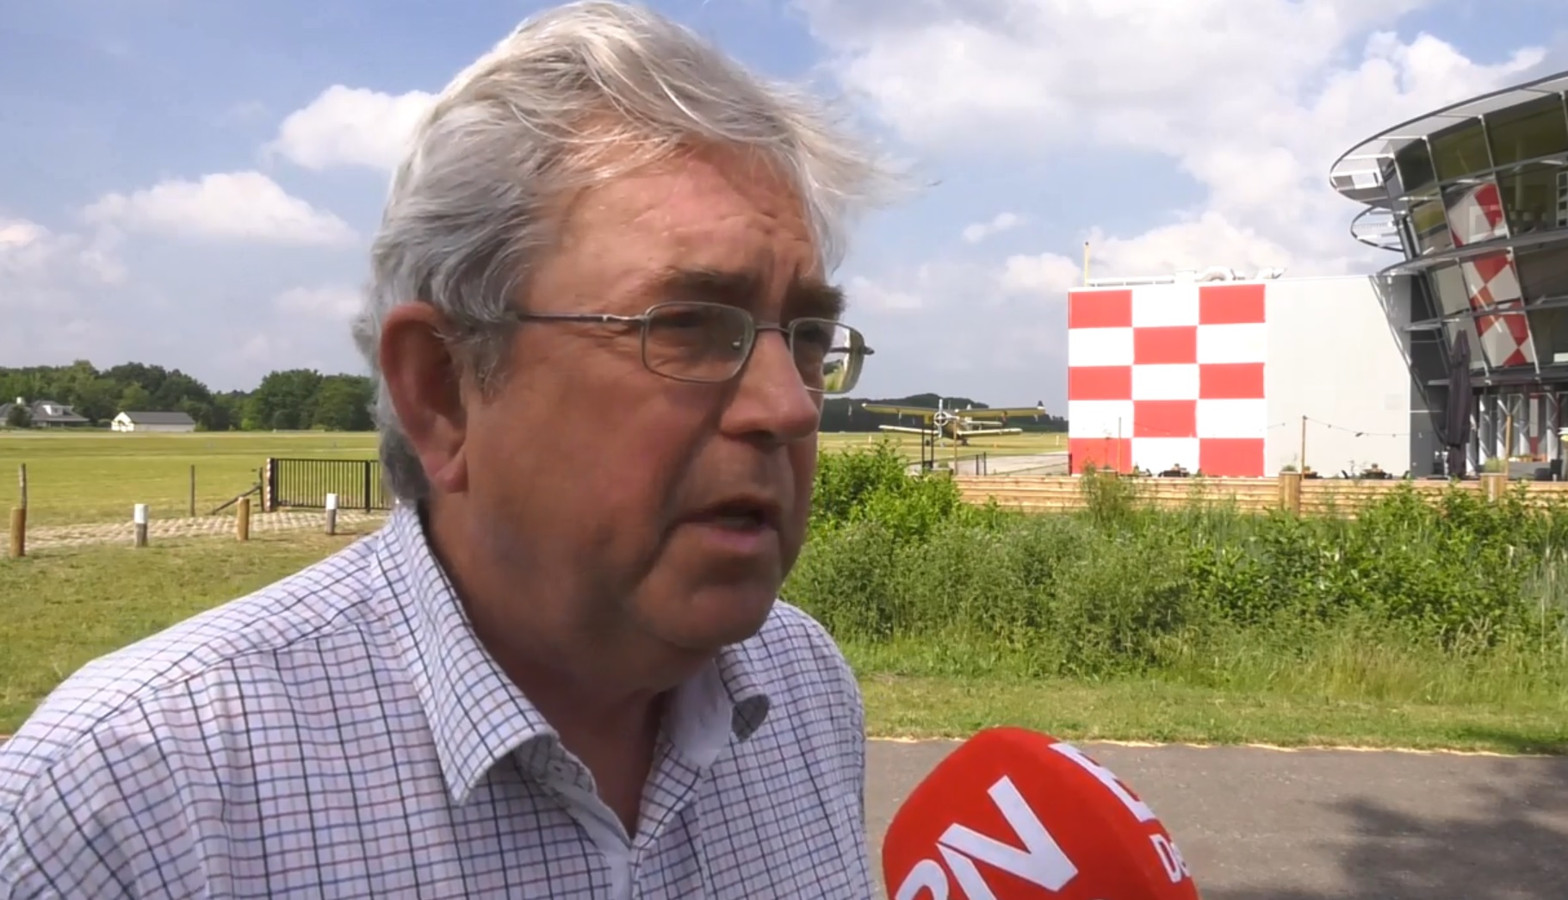 Directeur Breda International Airport in gesprek met BN DeStem